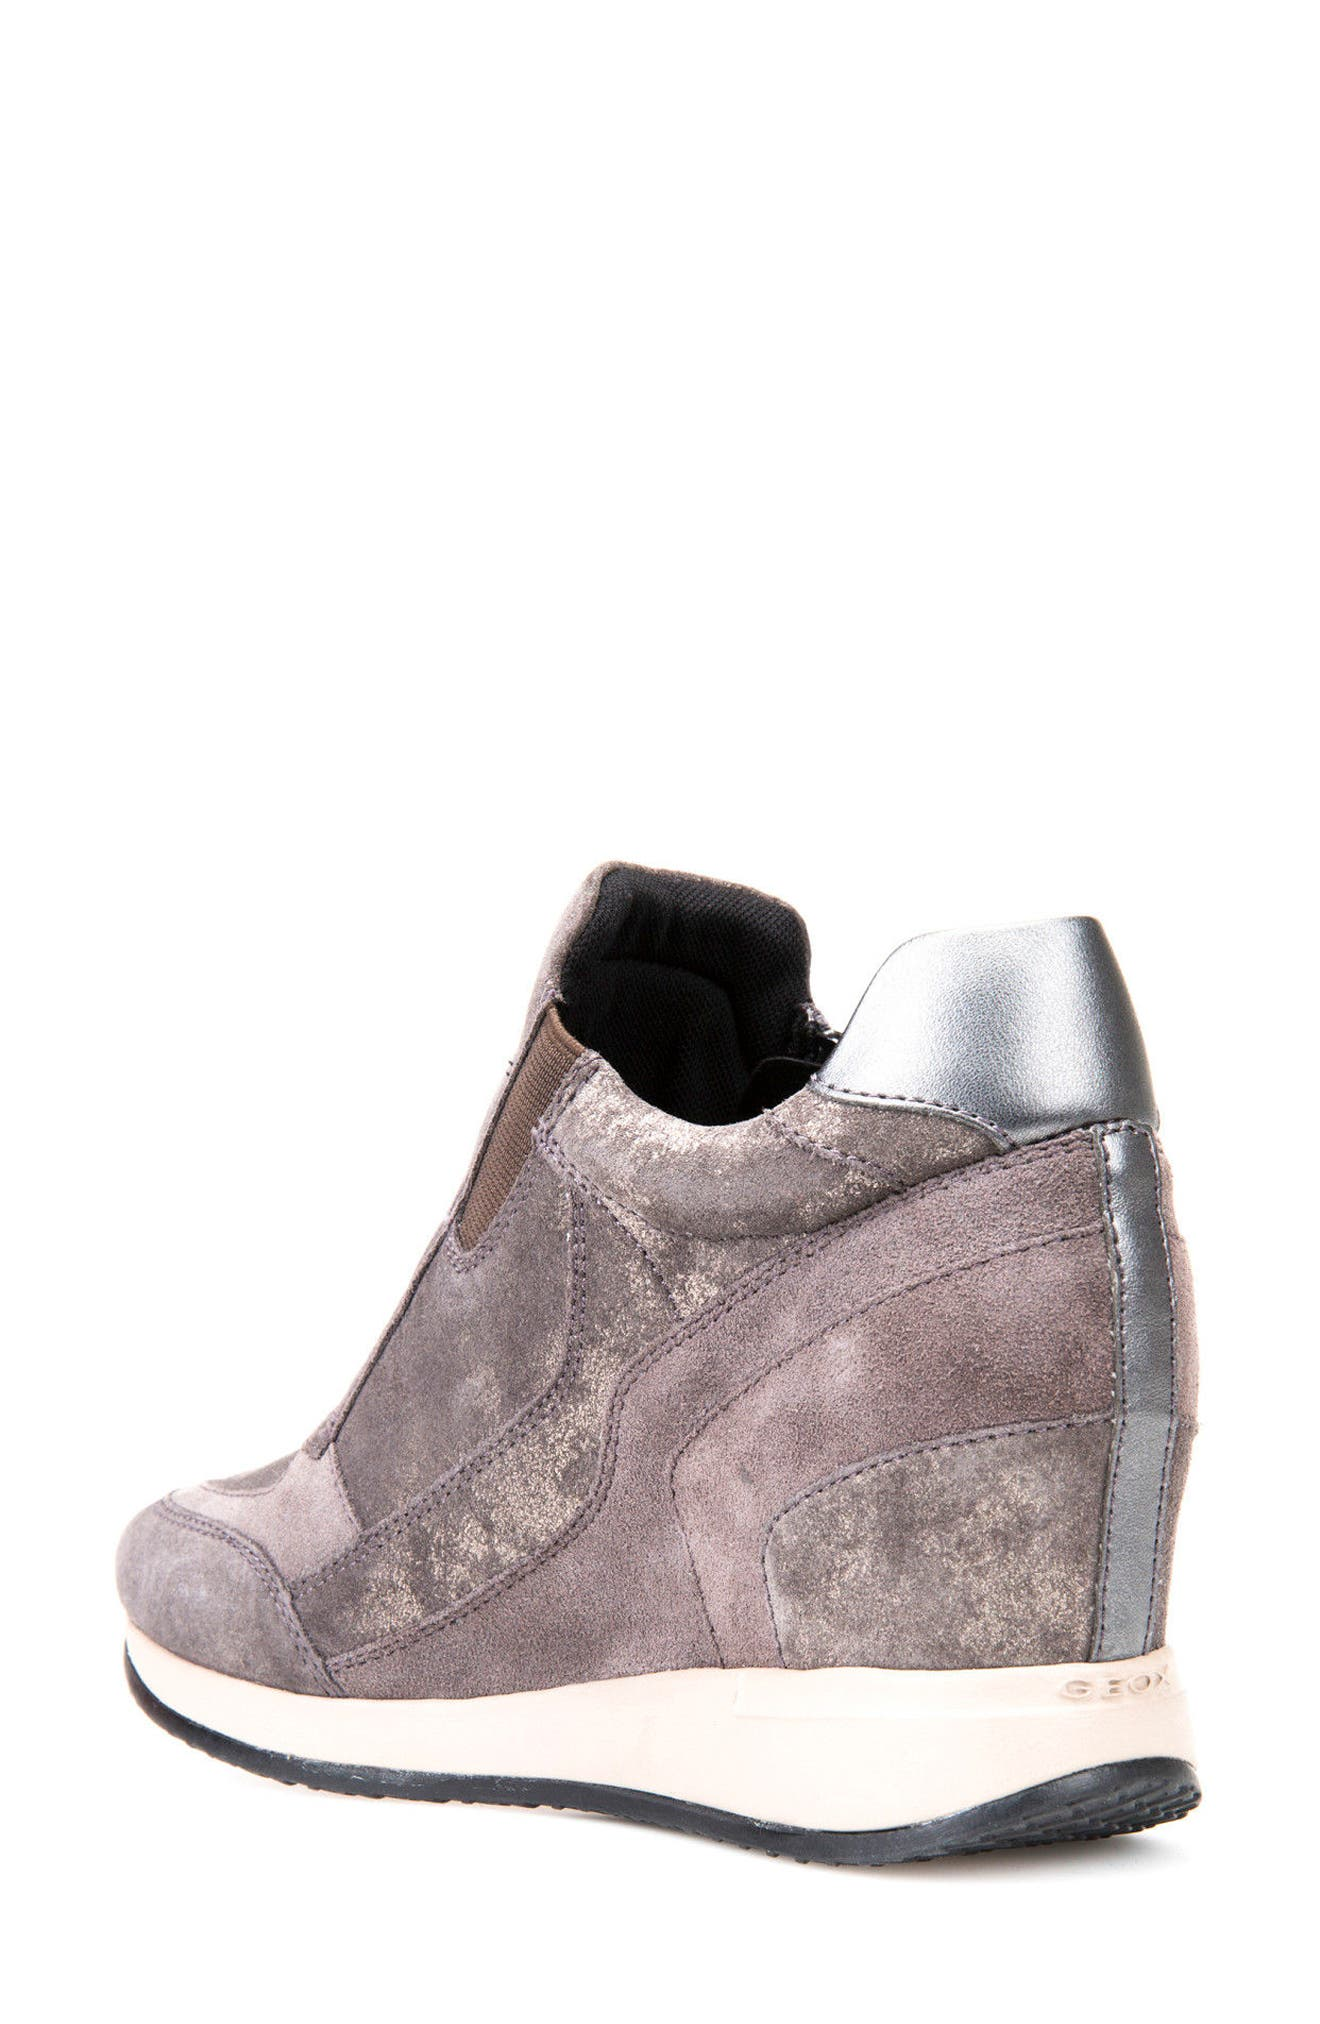 Nydame Wedge Sneaker,                             Alternate thumbnail 2, color,                             Dark Grey Leather